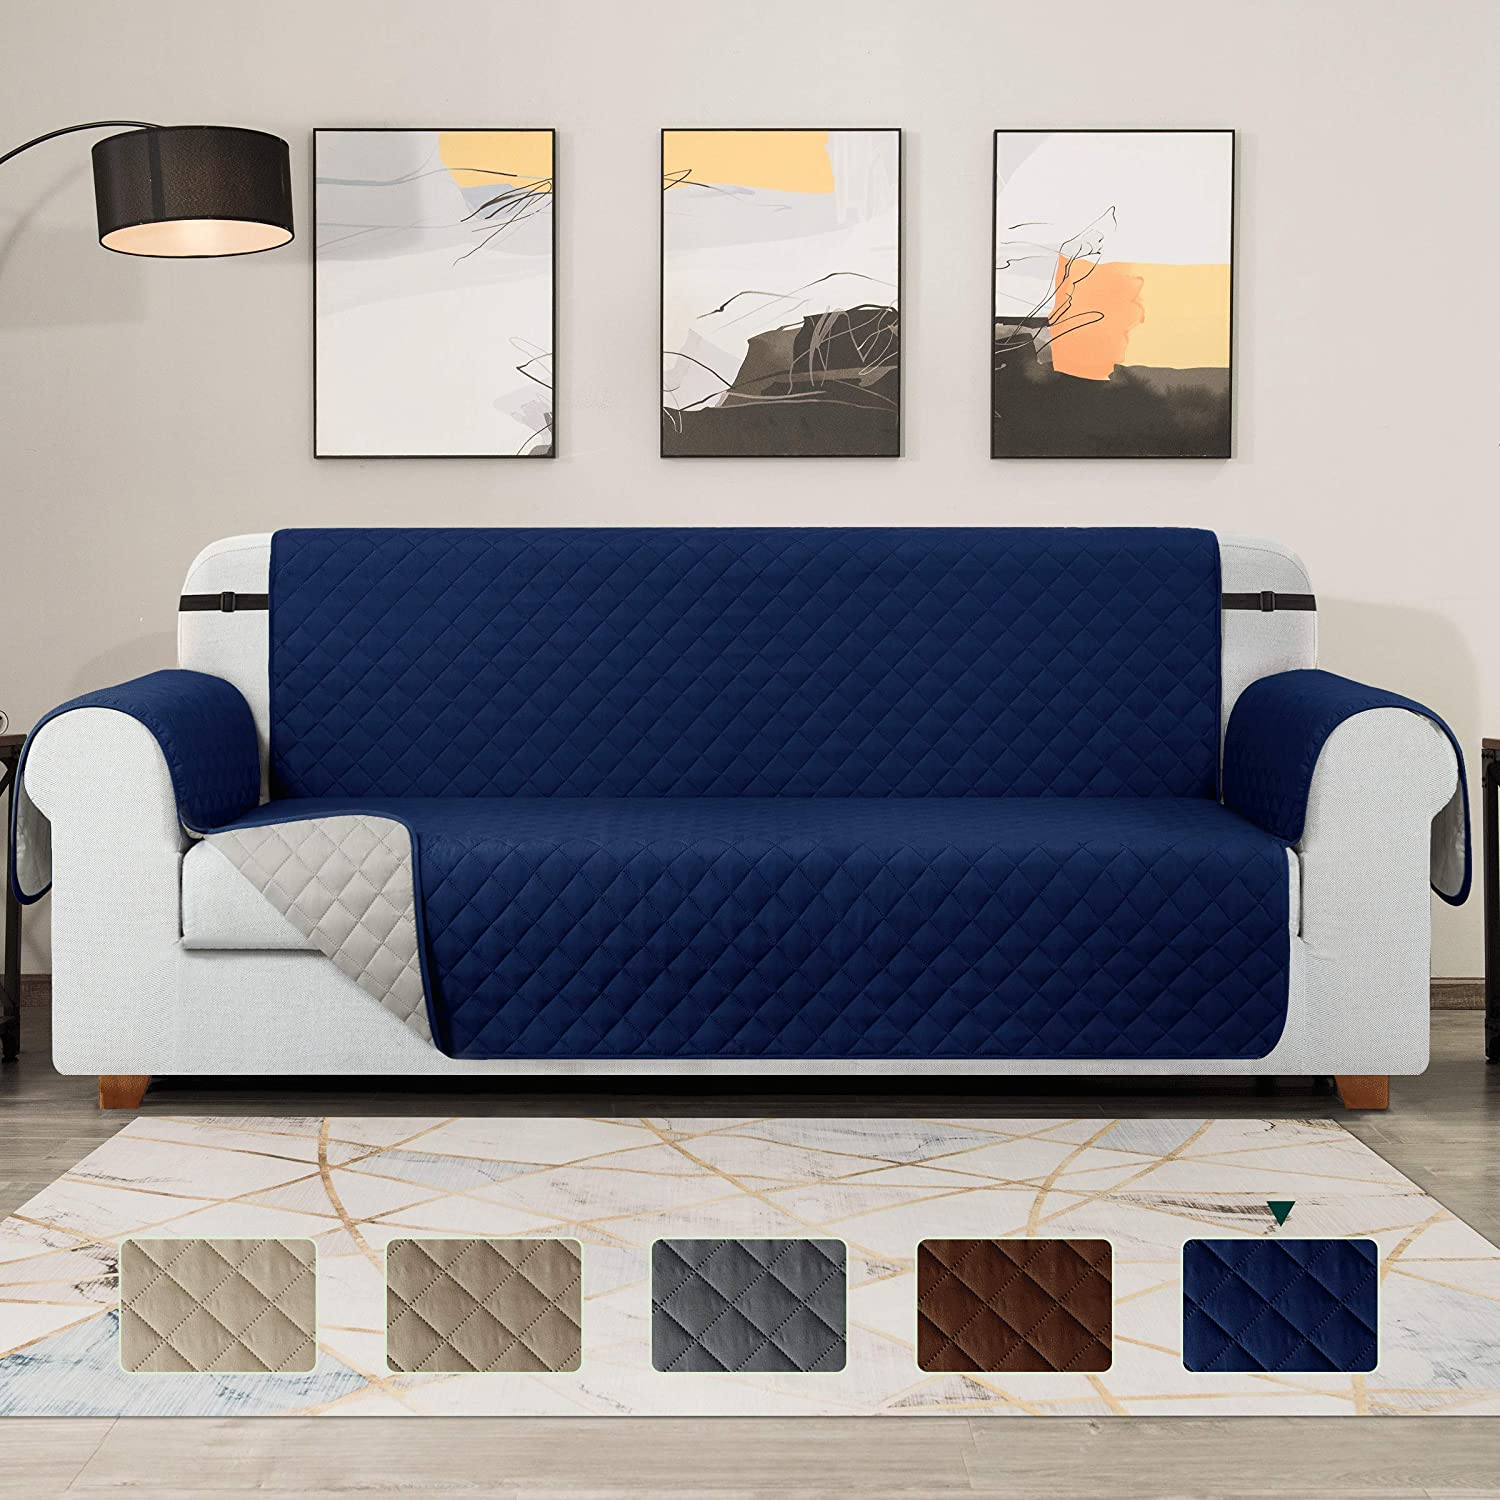 TOYABR Large Sofa Cover Reversible Couch Cover with Elastic Adjustable Strap Furniture Protector Fitted Seat Width Up to 54 Inch Sofa Slipcover Great for Home with Pets and Kids (Loveseat,Navy)